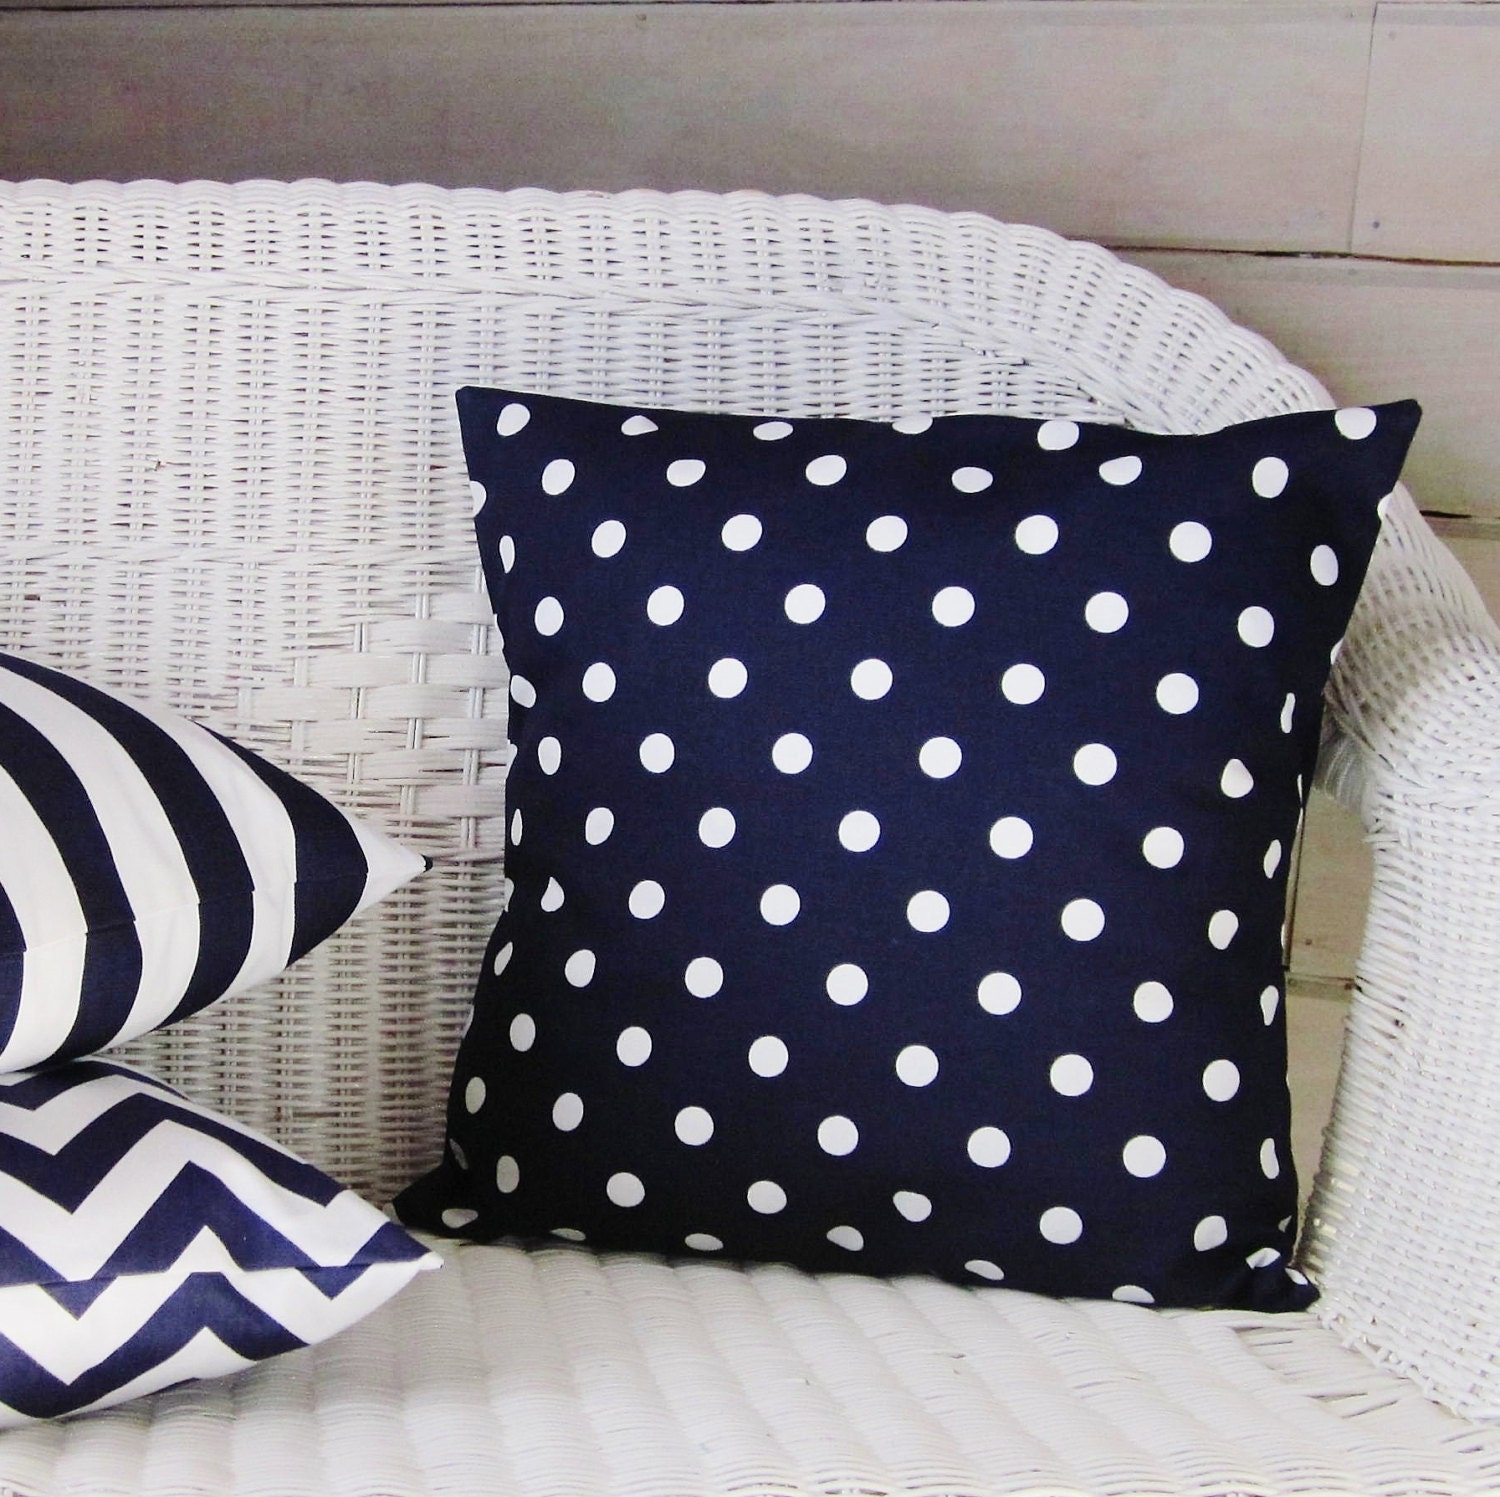 Navy Blue Polka Dot Pillow Cover Decorative Throw Accent Toss